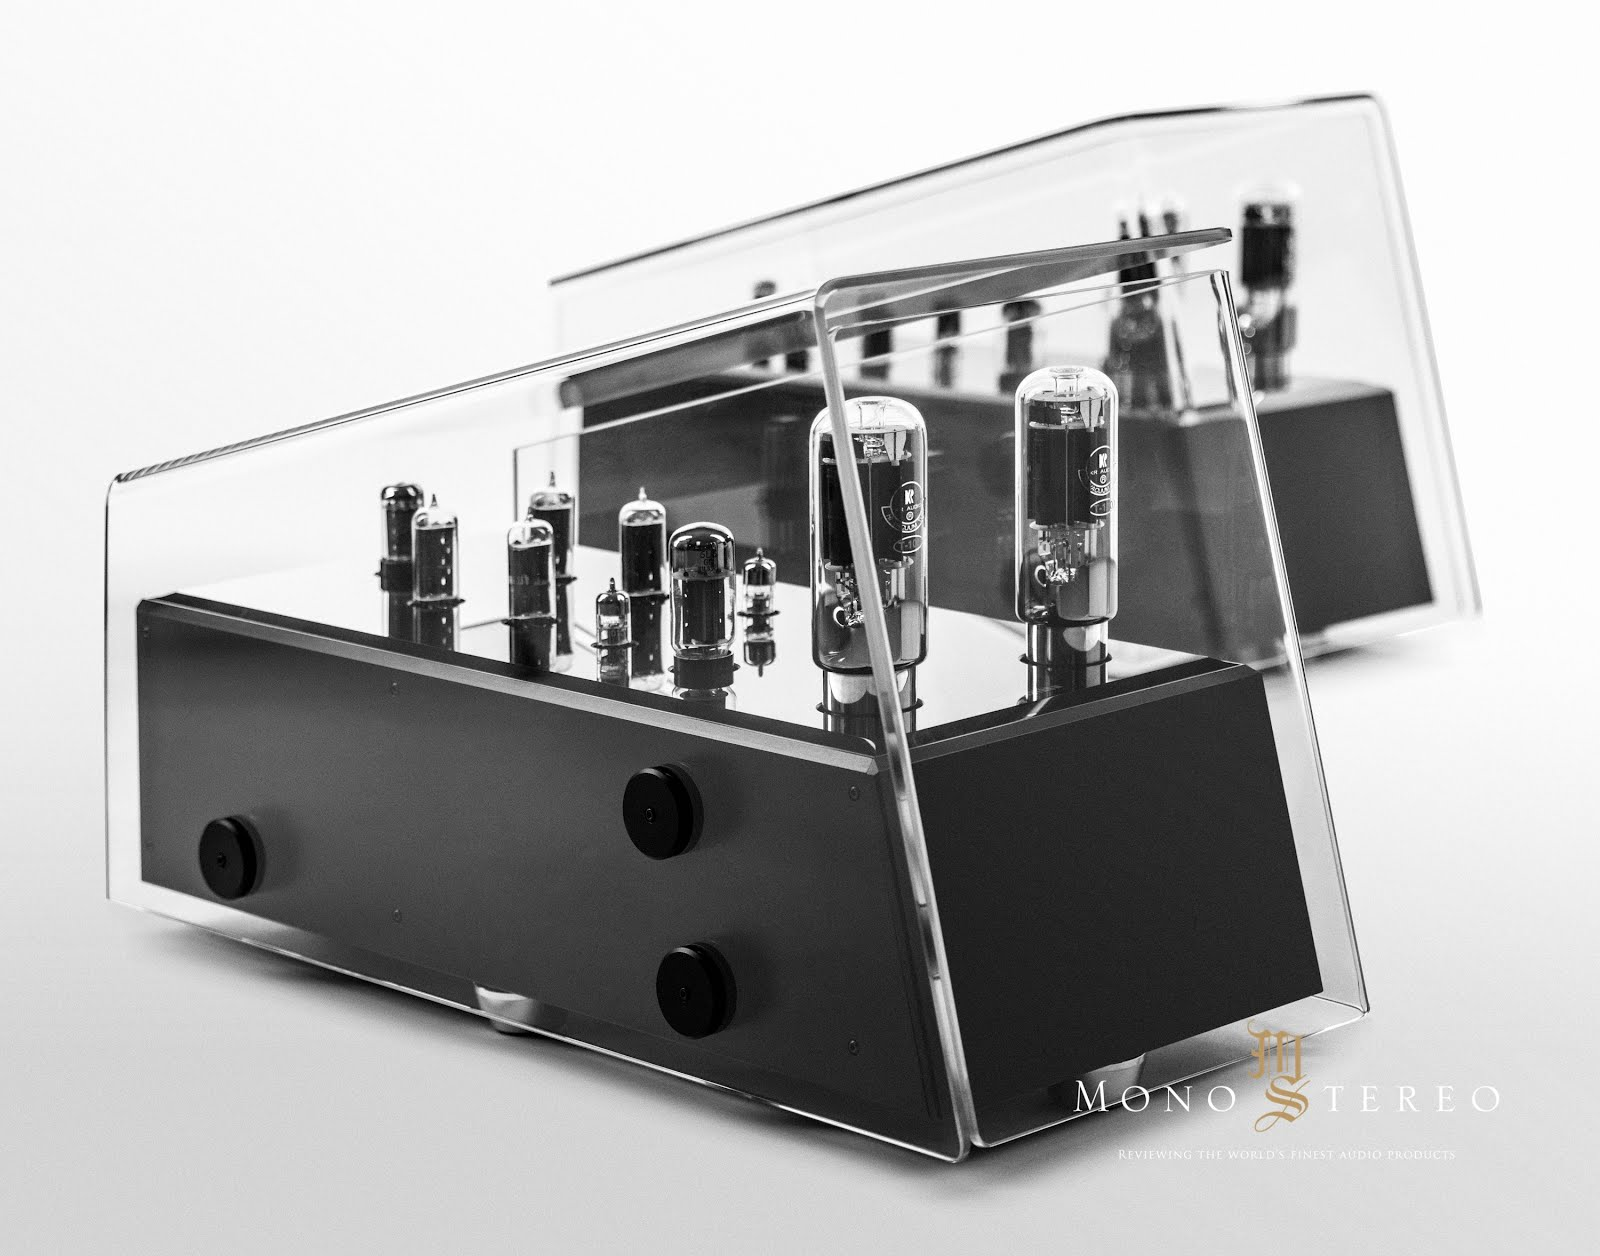 mono and stereo high-end audio magazine: engstrÖm eric, monica and